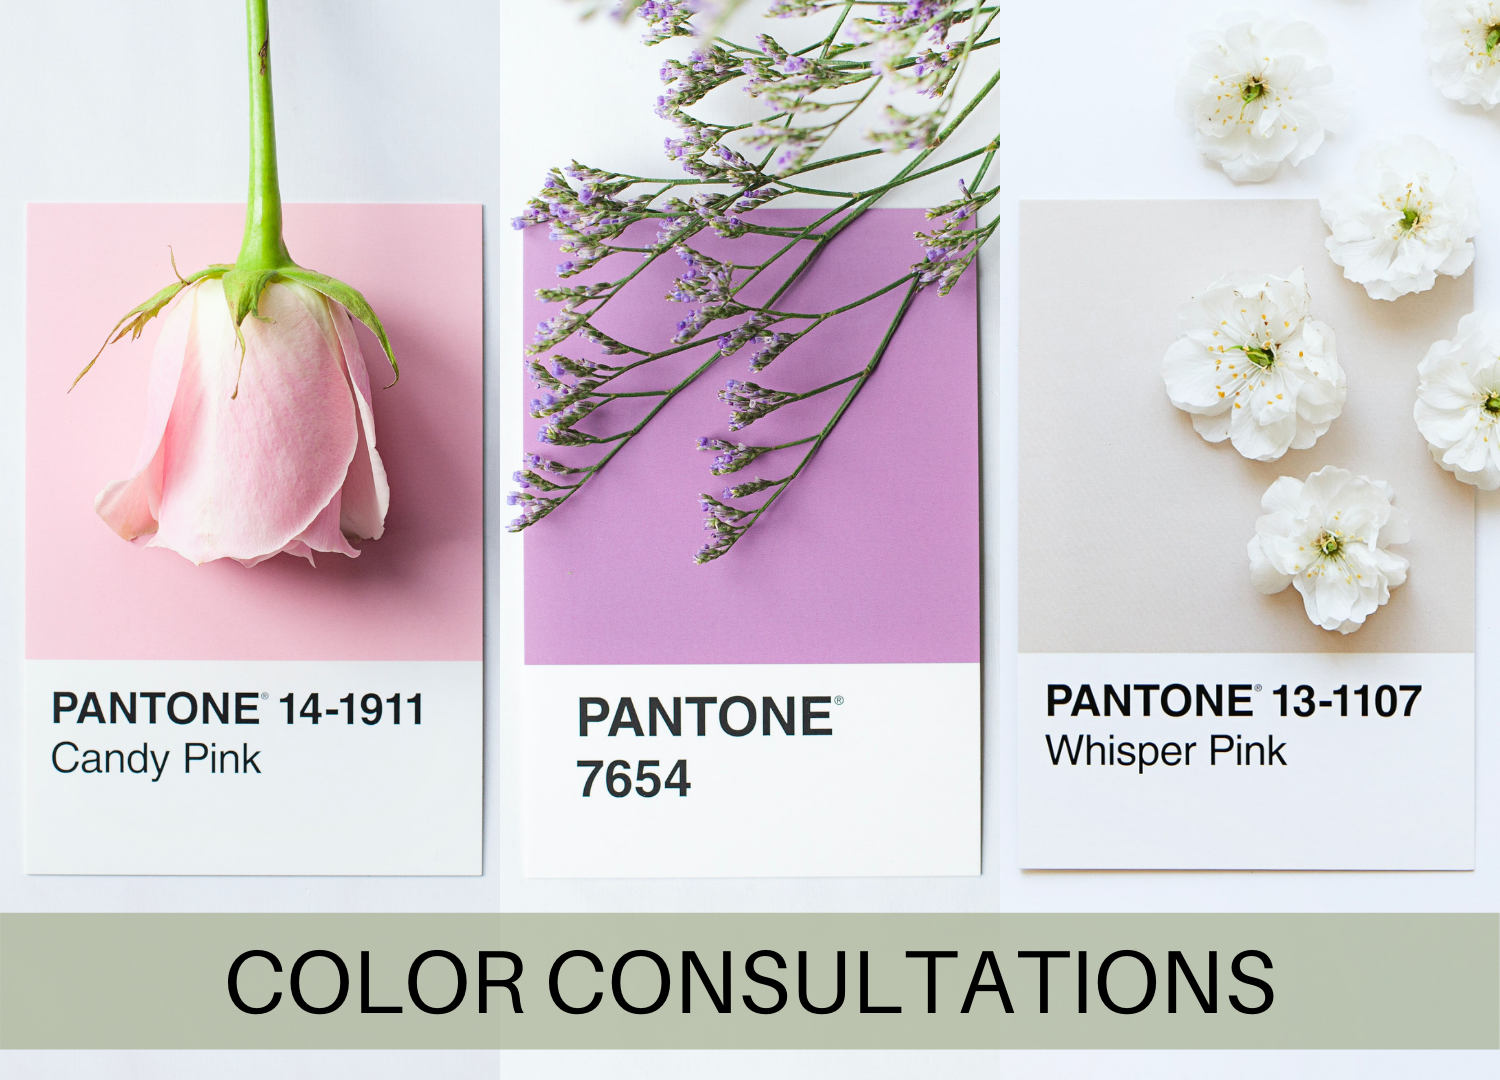 Color Consultations